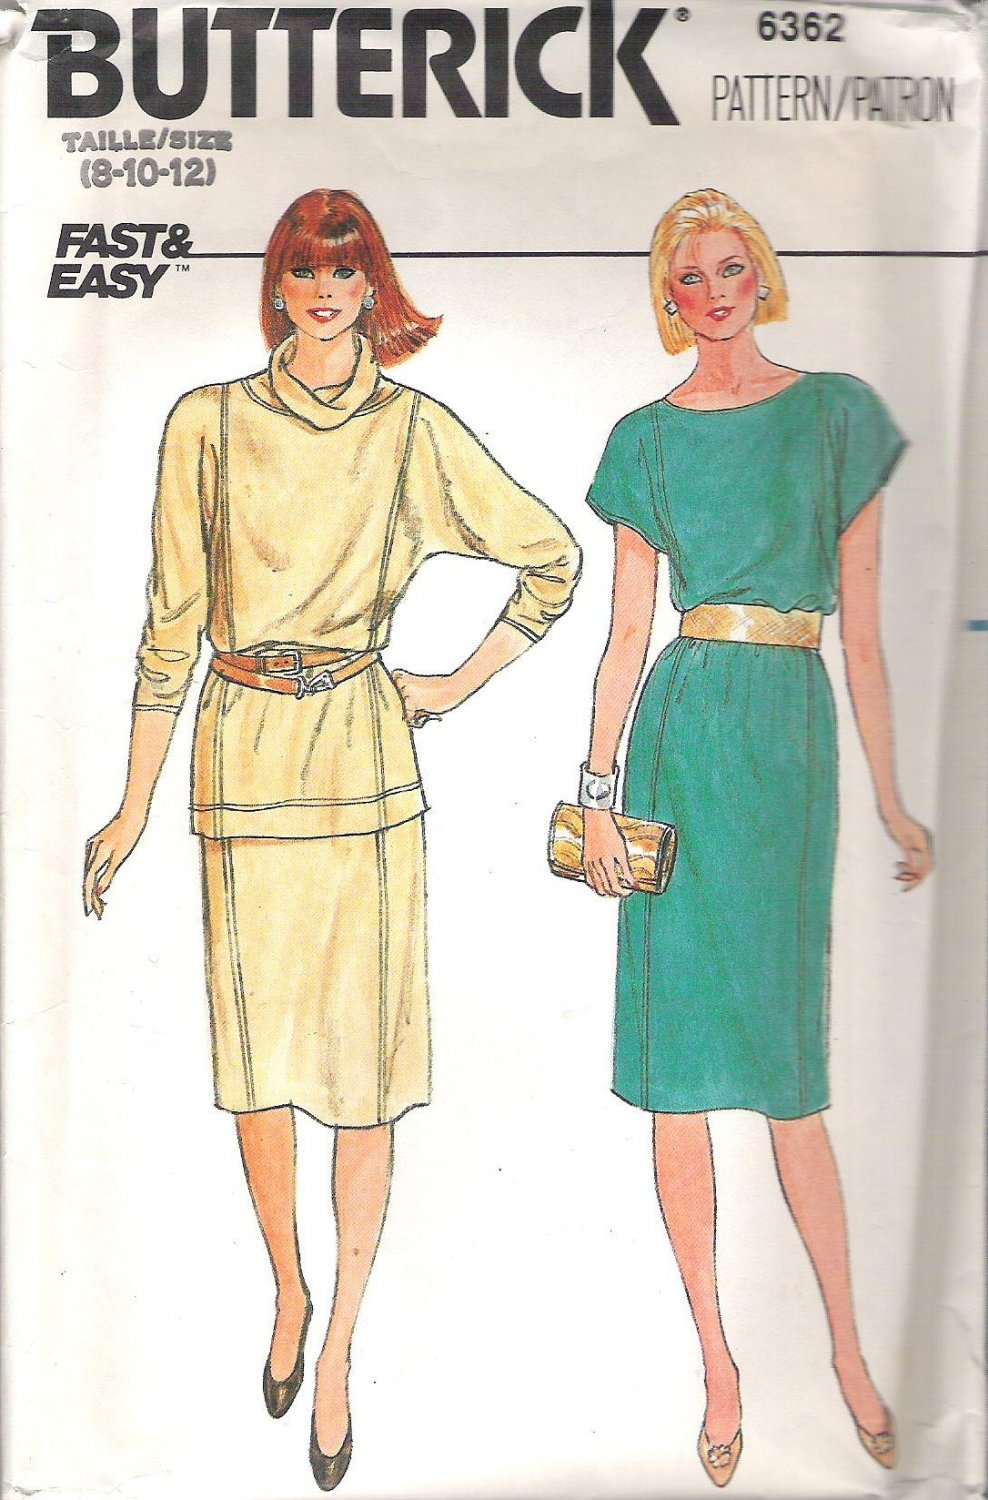 Butterick 6362 Pattern Pullover Dress, Top and Skirt  Size 8-12  Cut to 10